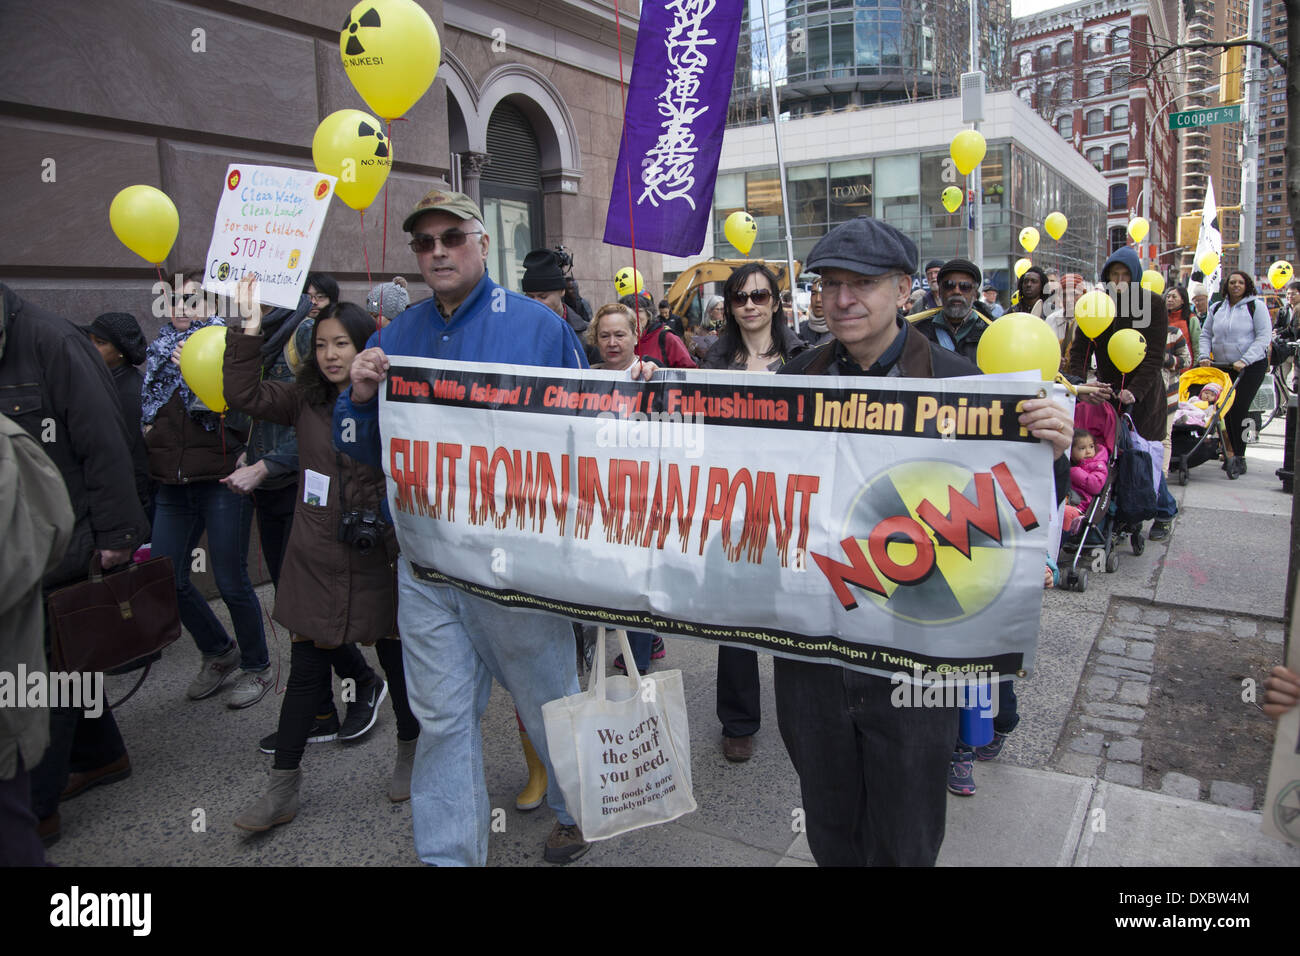 Antinuclear demonstrators march in NYC on the third anniversary of the ongoing nuclear meltdown disaster at Fukushima, Japan. - Stock Image